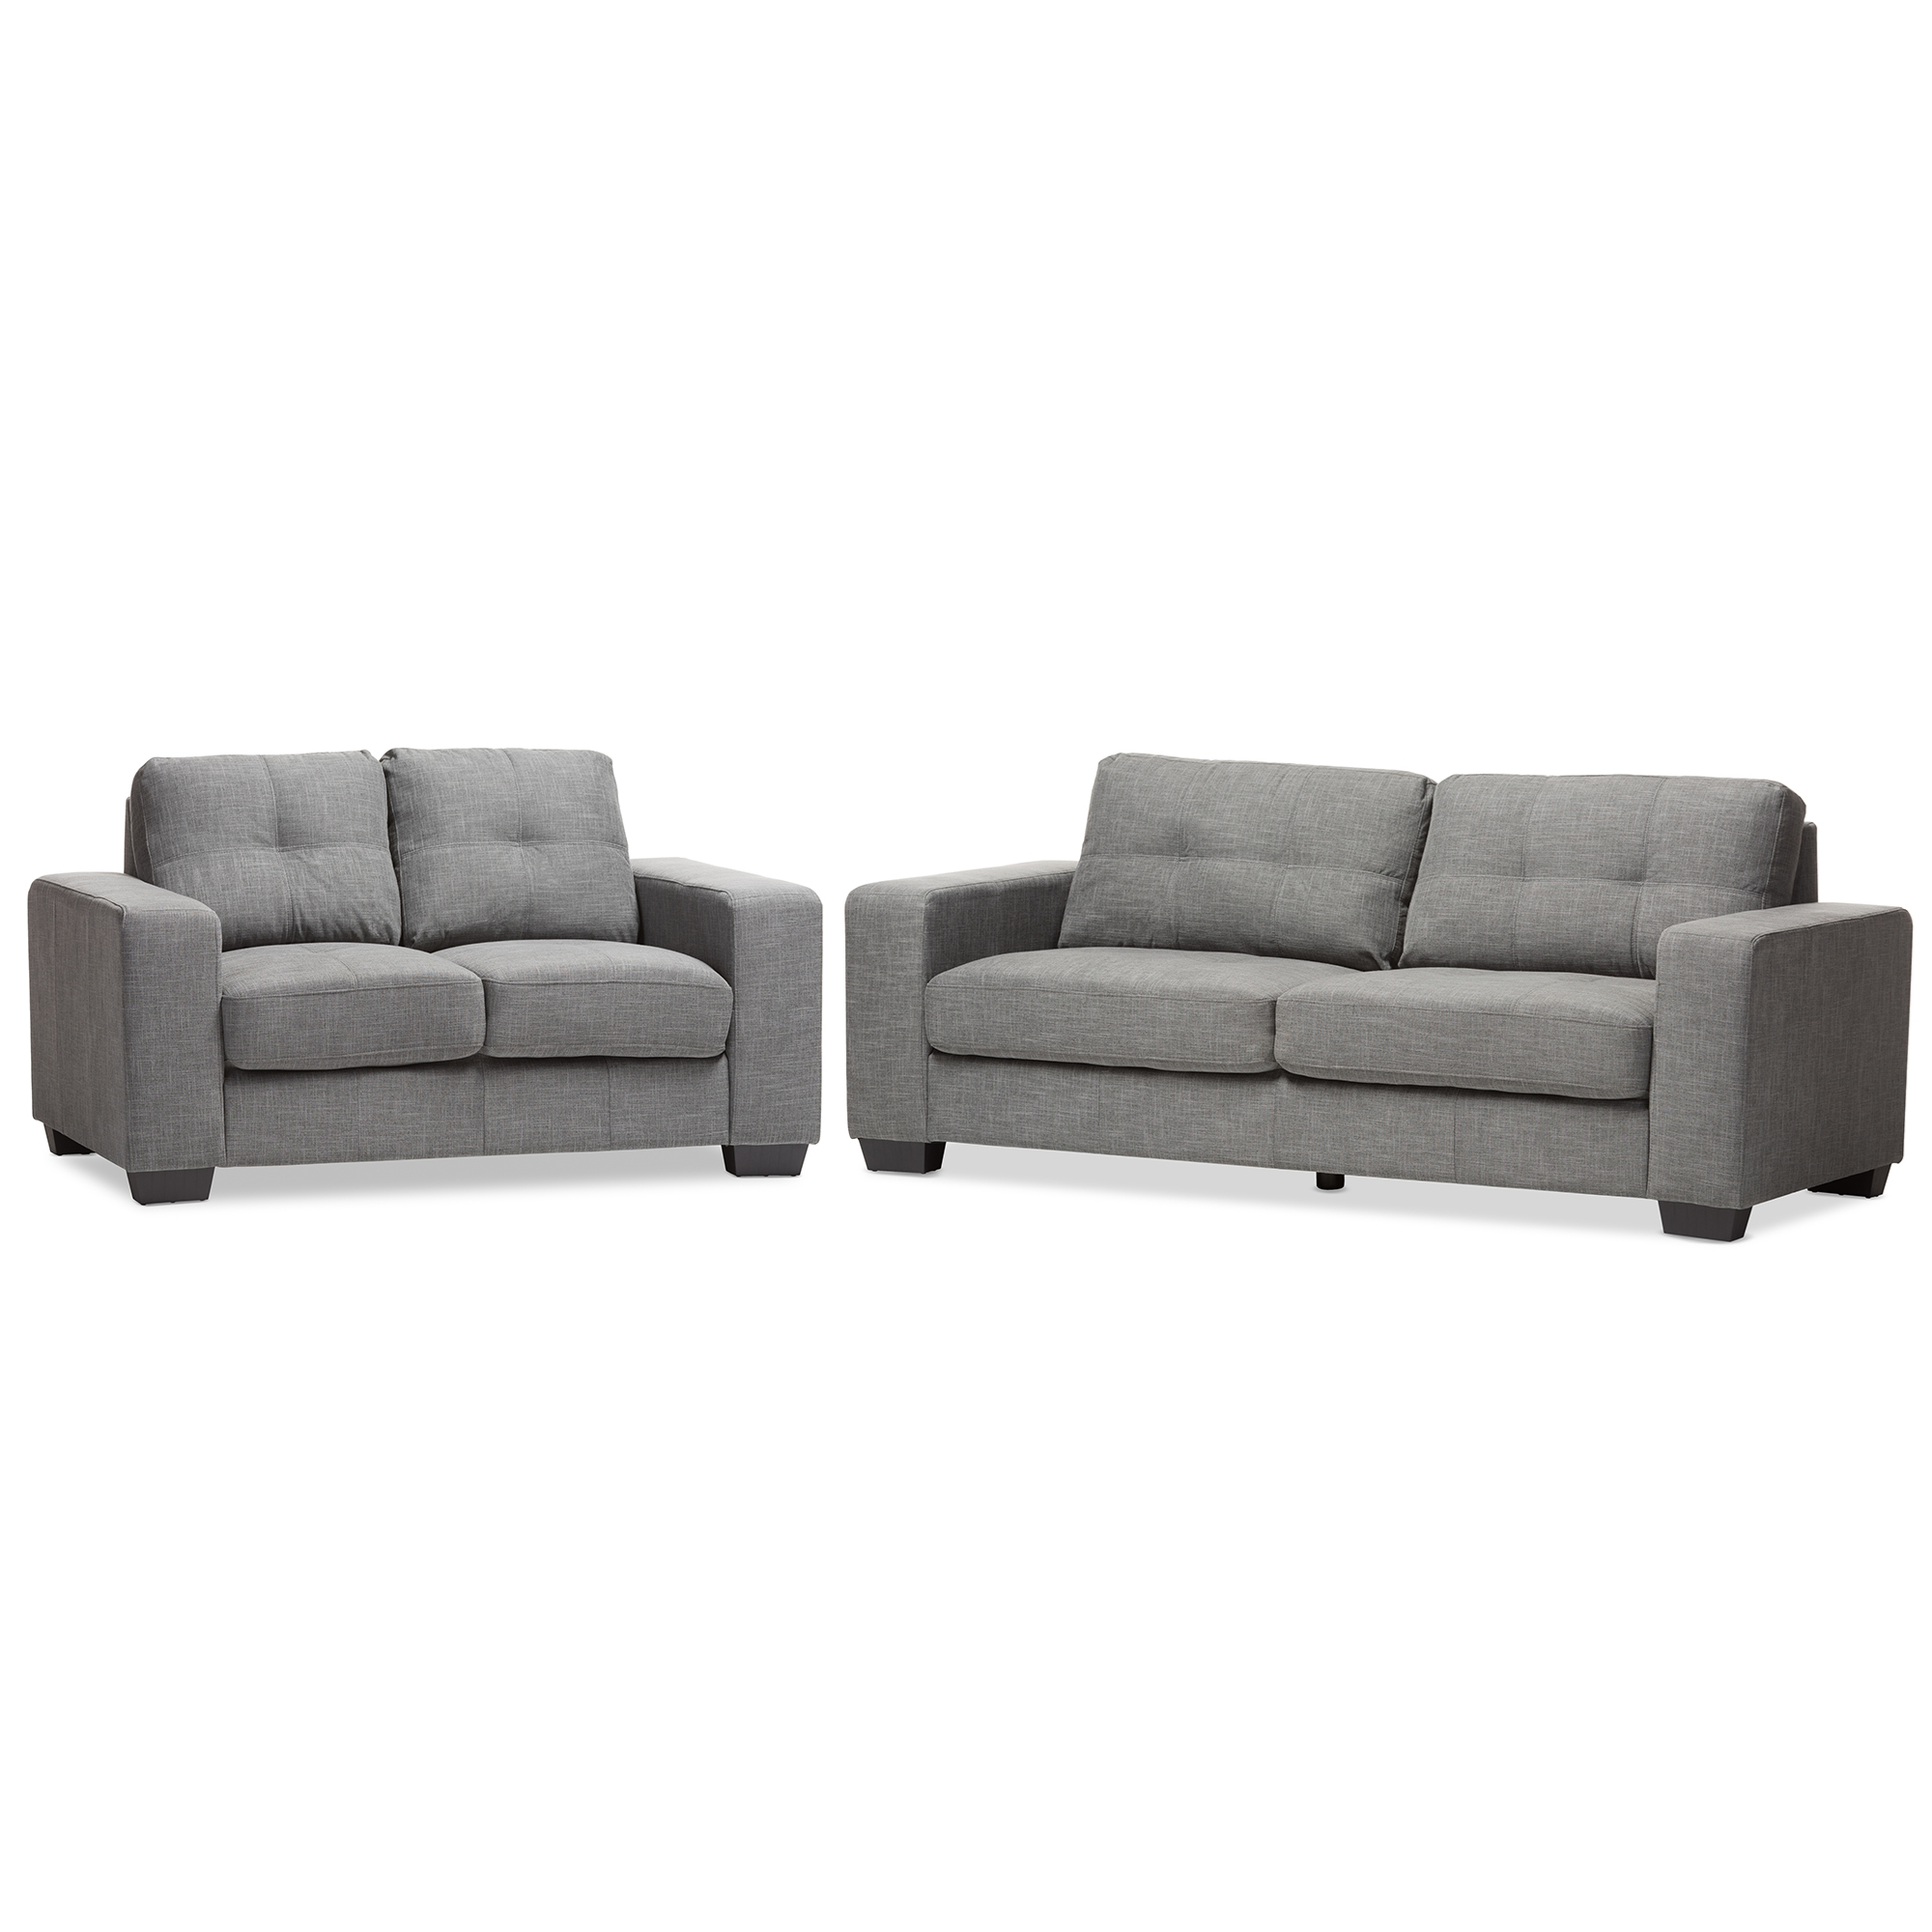 Baxton Studio Westerlund Modern And Contemporary Shadow Gray Fabric  Upholstered 2 Piece Loveseat And Sofa Livingroom Set